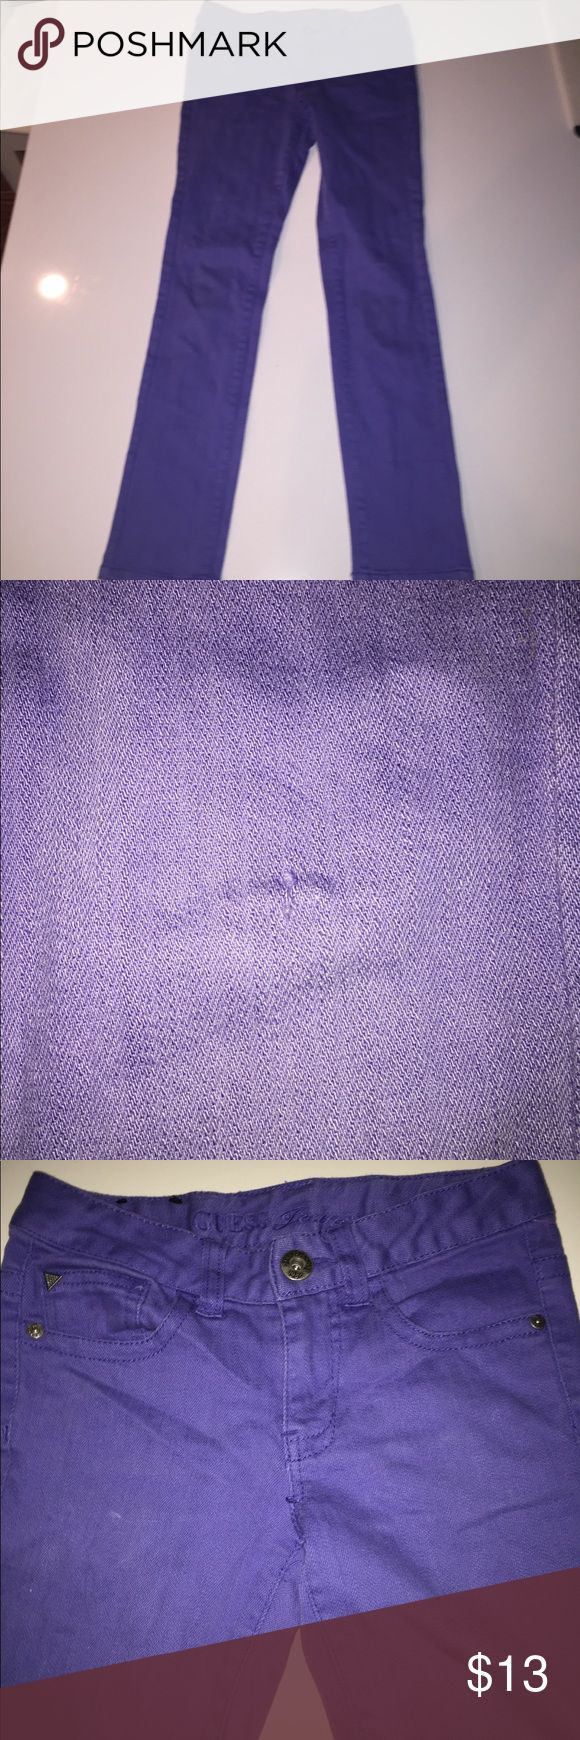 """Guess jeans kids purple skinny pants Sarah low 10 Thanks for looking at this great guess jeans for girls. They are a size 10. There is a very small hole on the knee. Waist 26"""" hips 29"""" rise 7"""" Inseam 26"""". Thanks for looking. Guess Bottoms Jeans"""